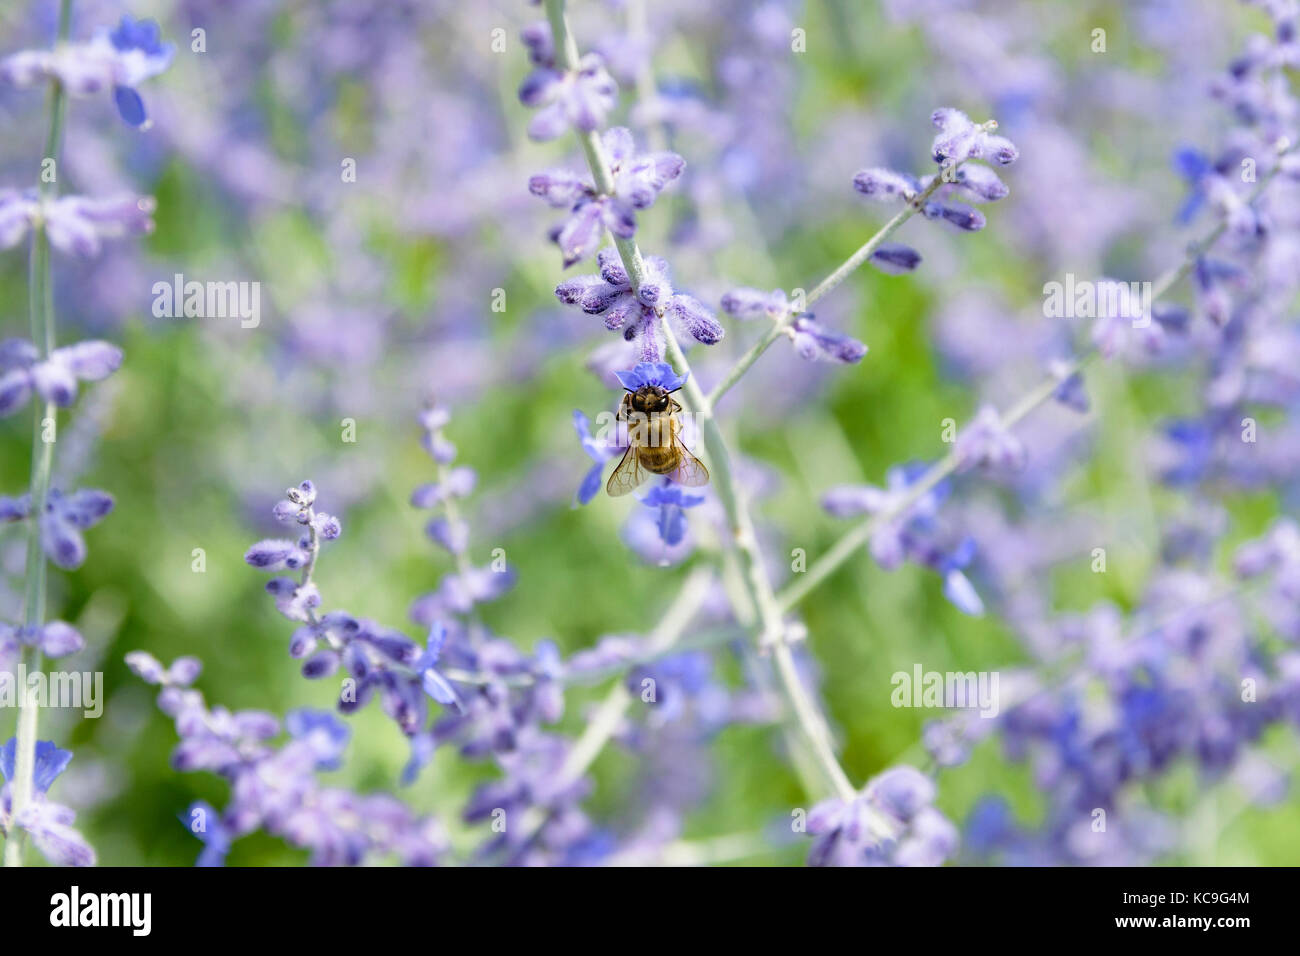 Close-Up Of Bee Collecting Pollen From Russian Sage Flowers Or Perovskia Atriplicifolia Stock Photo